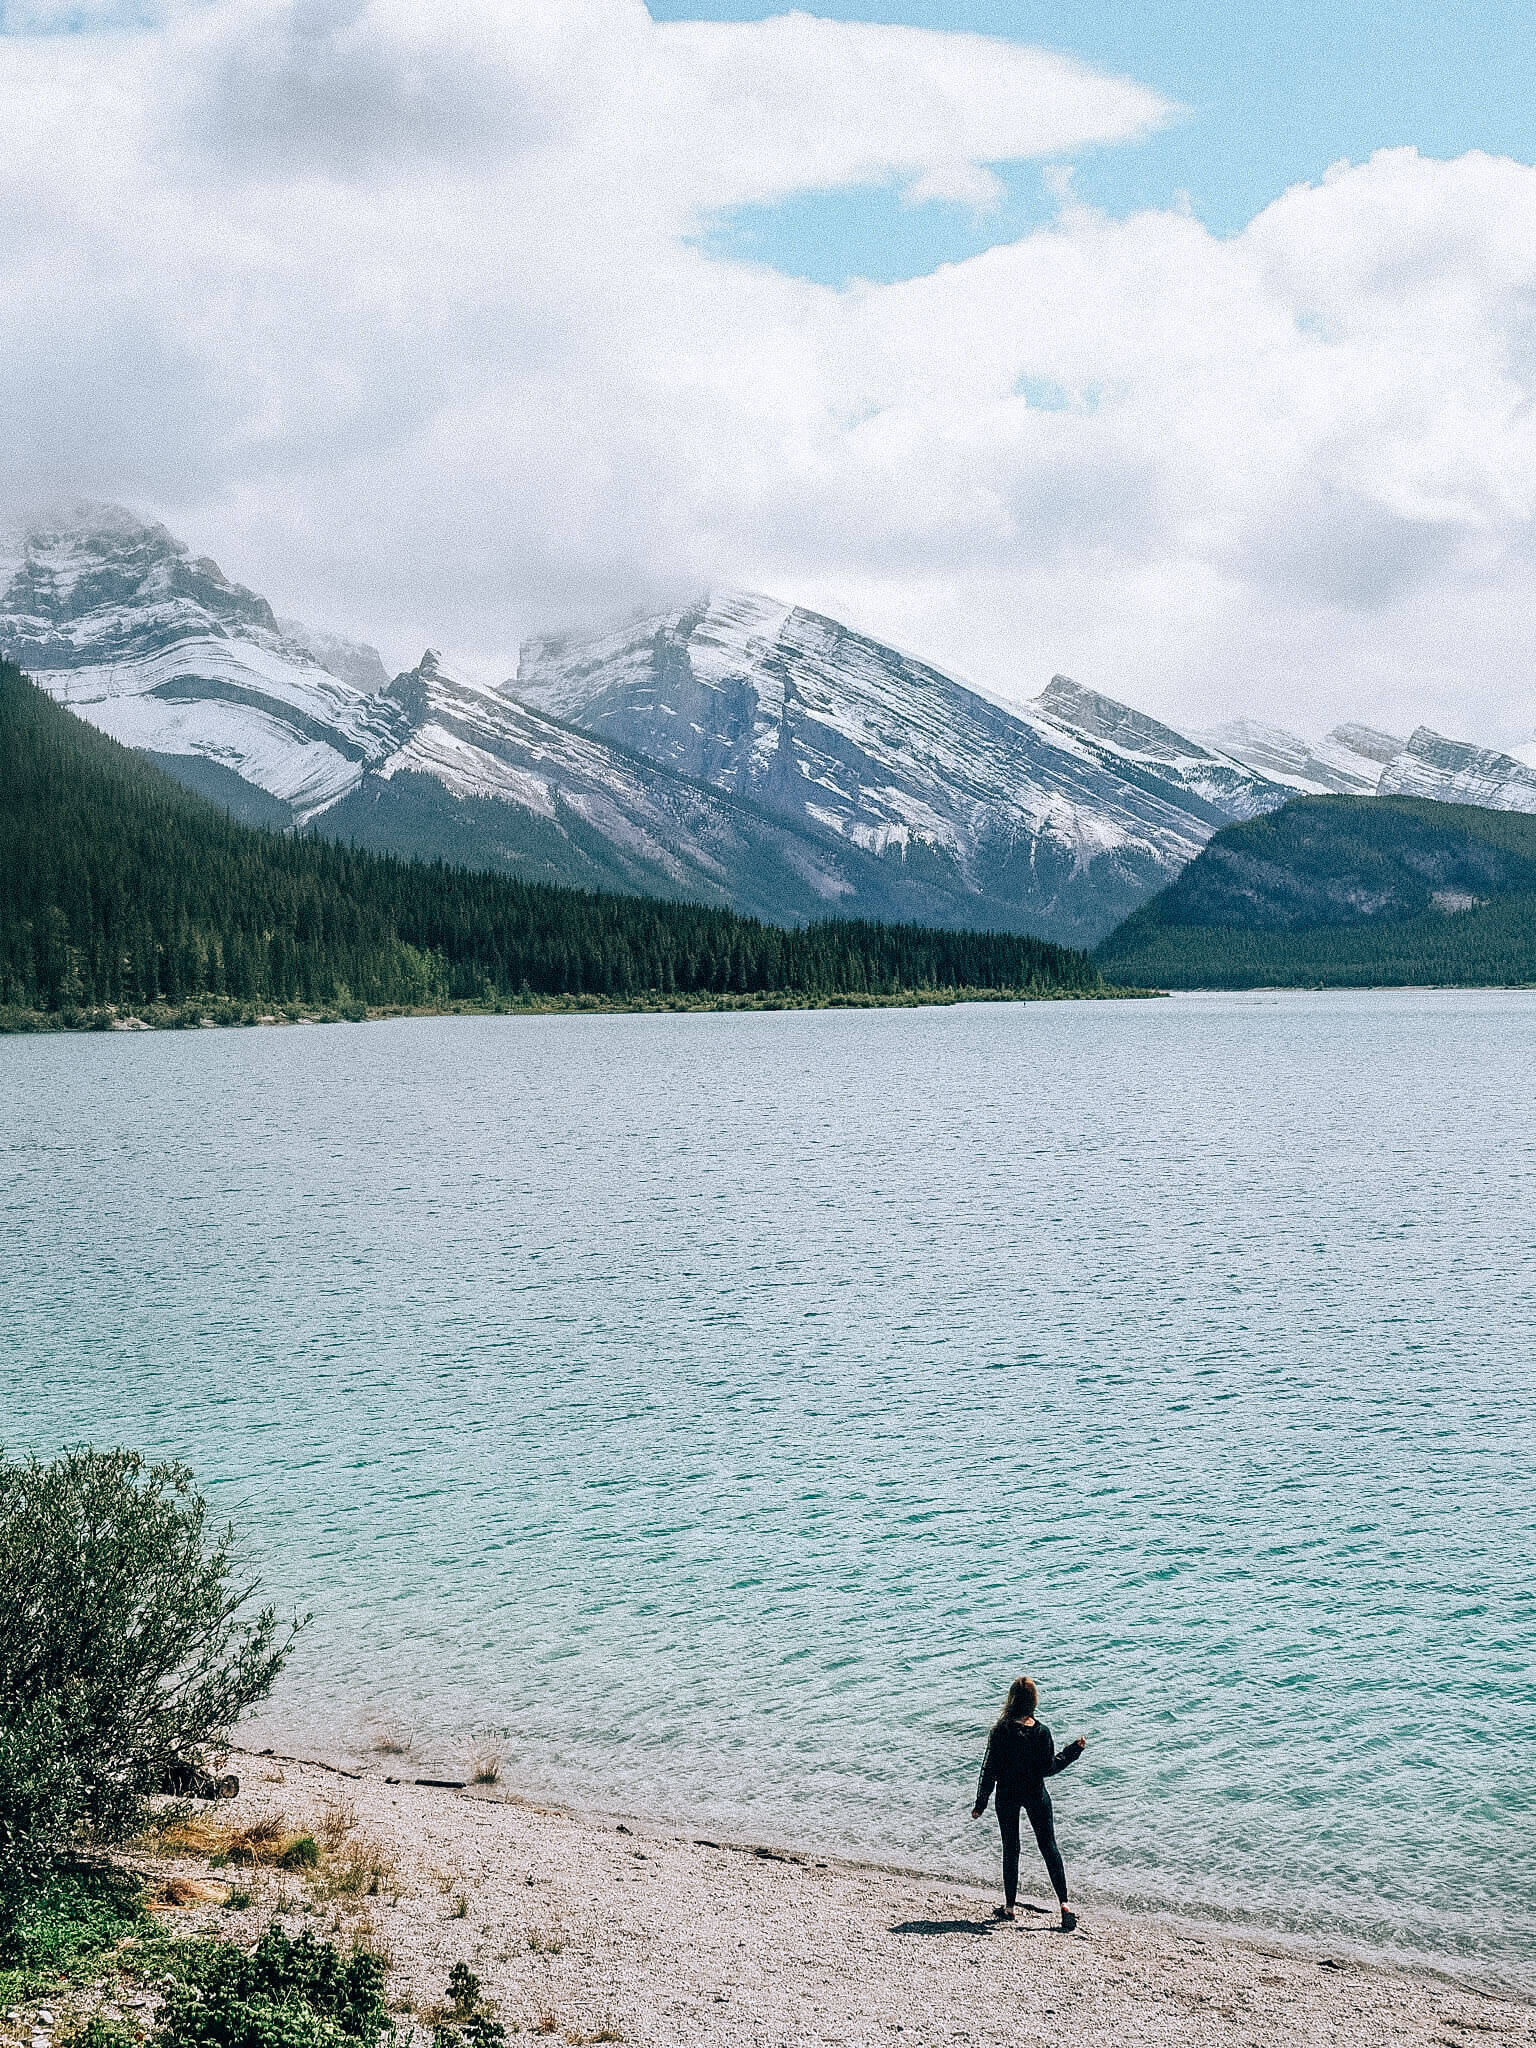 Best Hikes in Alberta Canada: Canmore, Spray Lake, Banff, Lake Louise